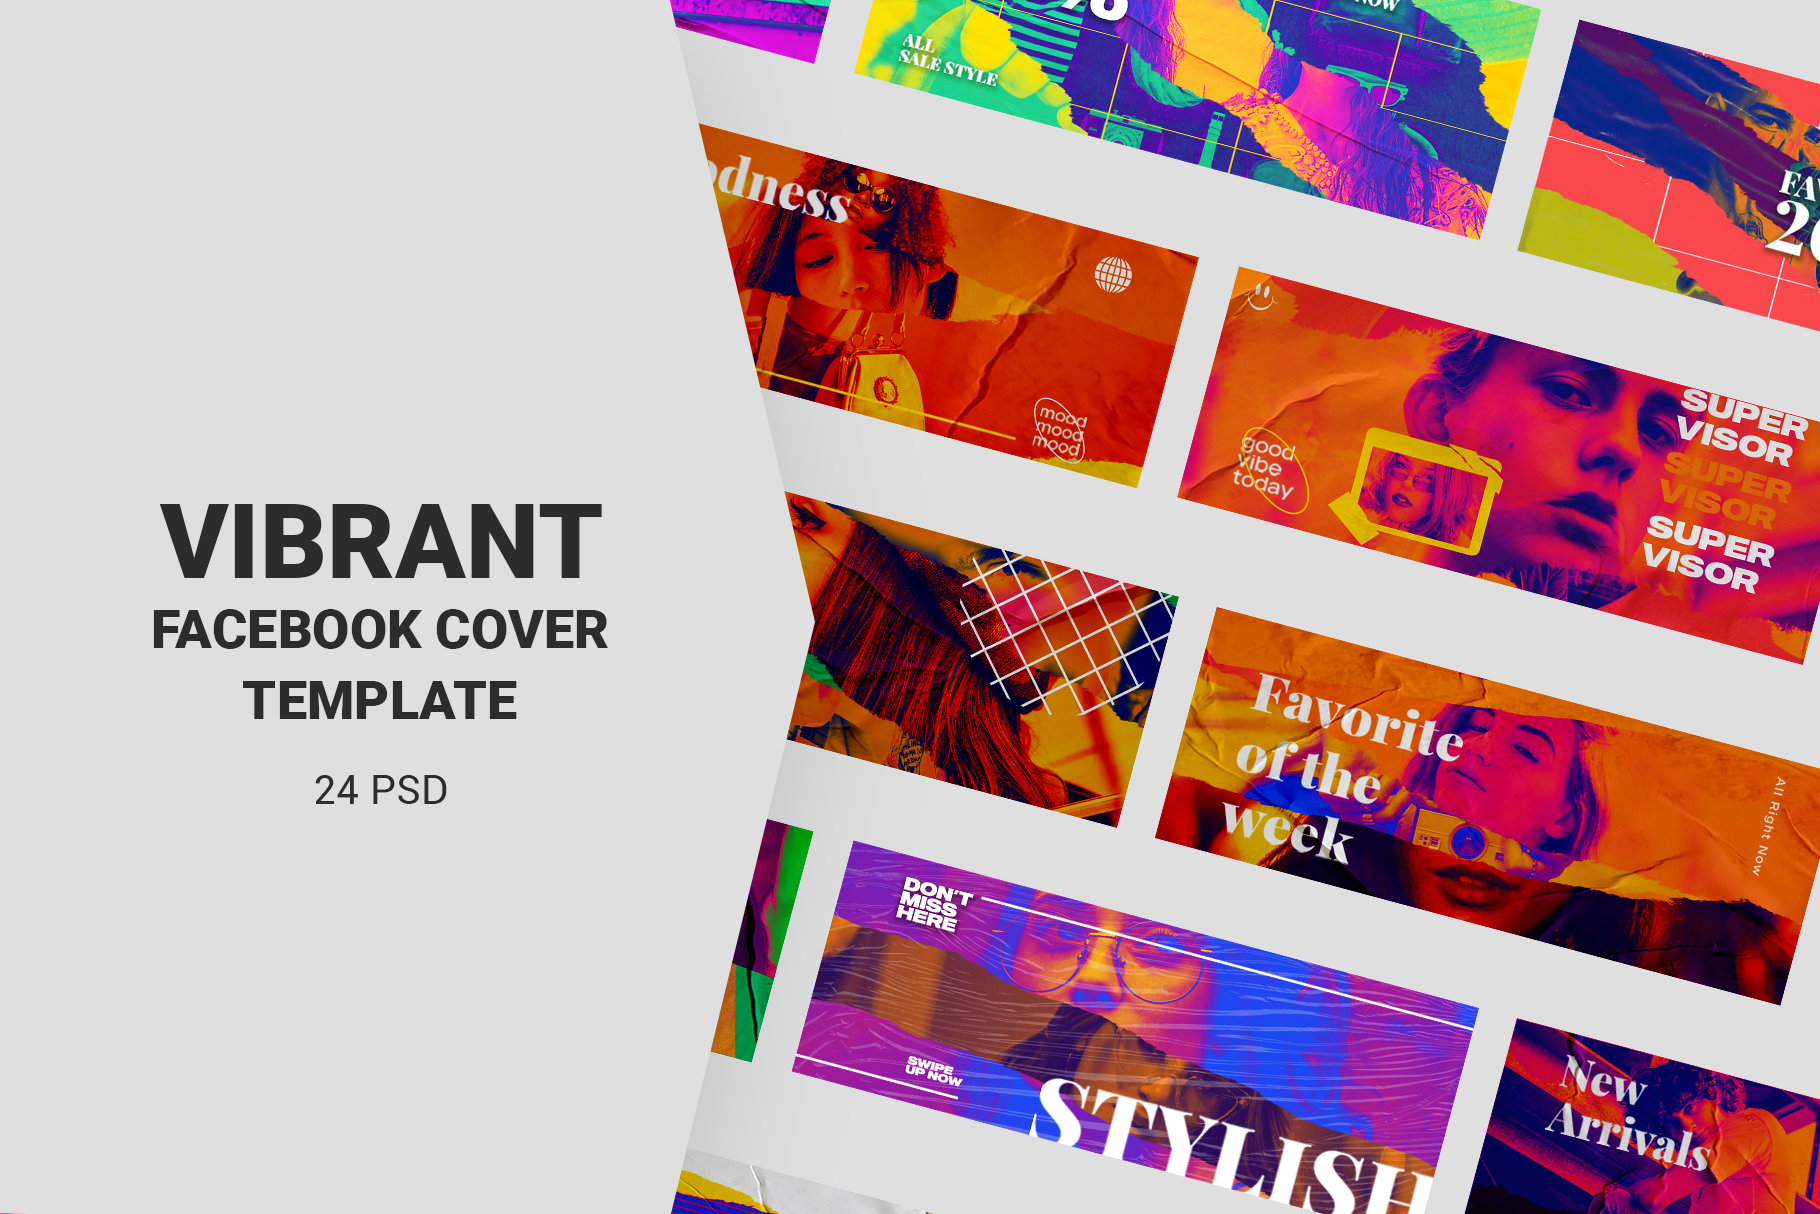 Download Free Vibrant Facebook Cover Templates Graphic By Qohhaarqhaz for Cricut Explore, Silhouette and other cutting machines.